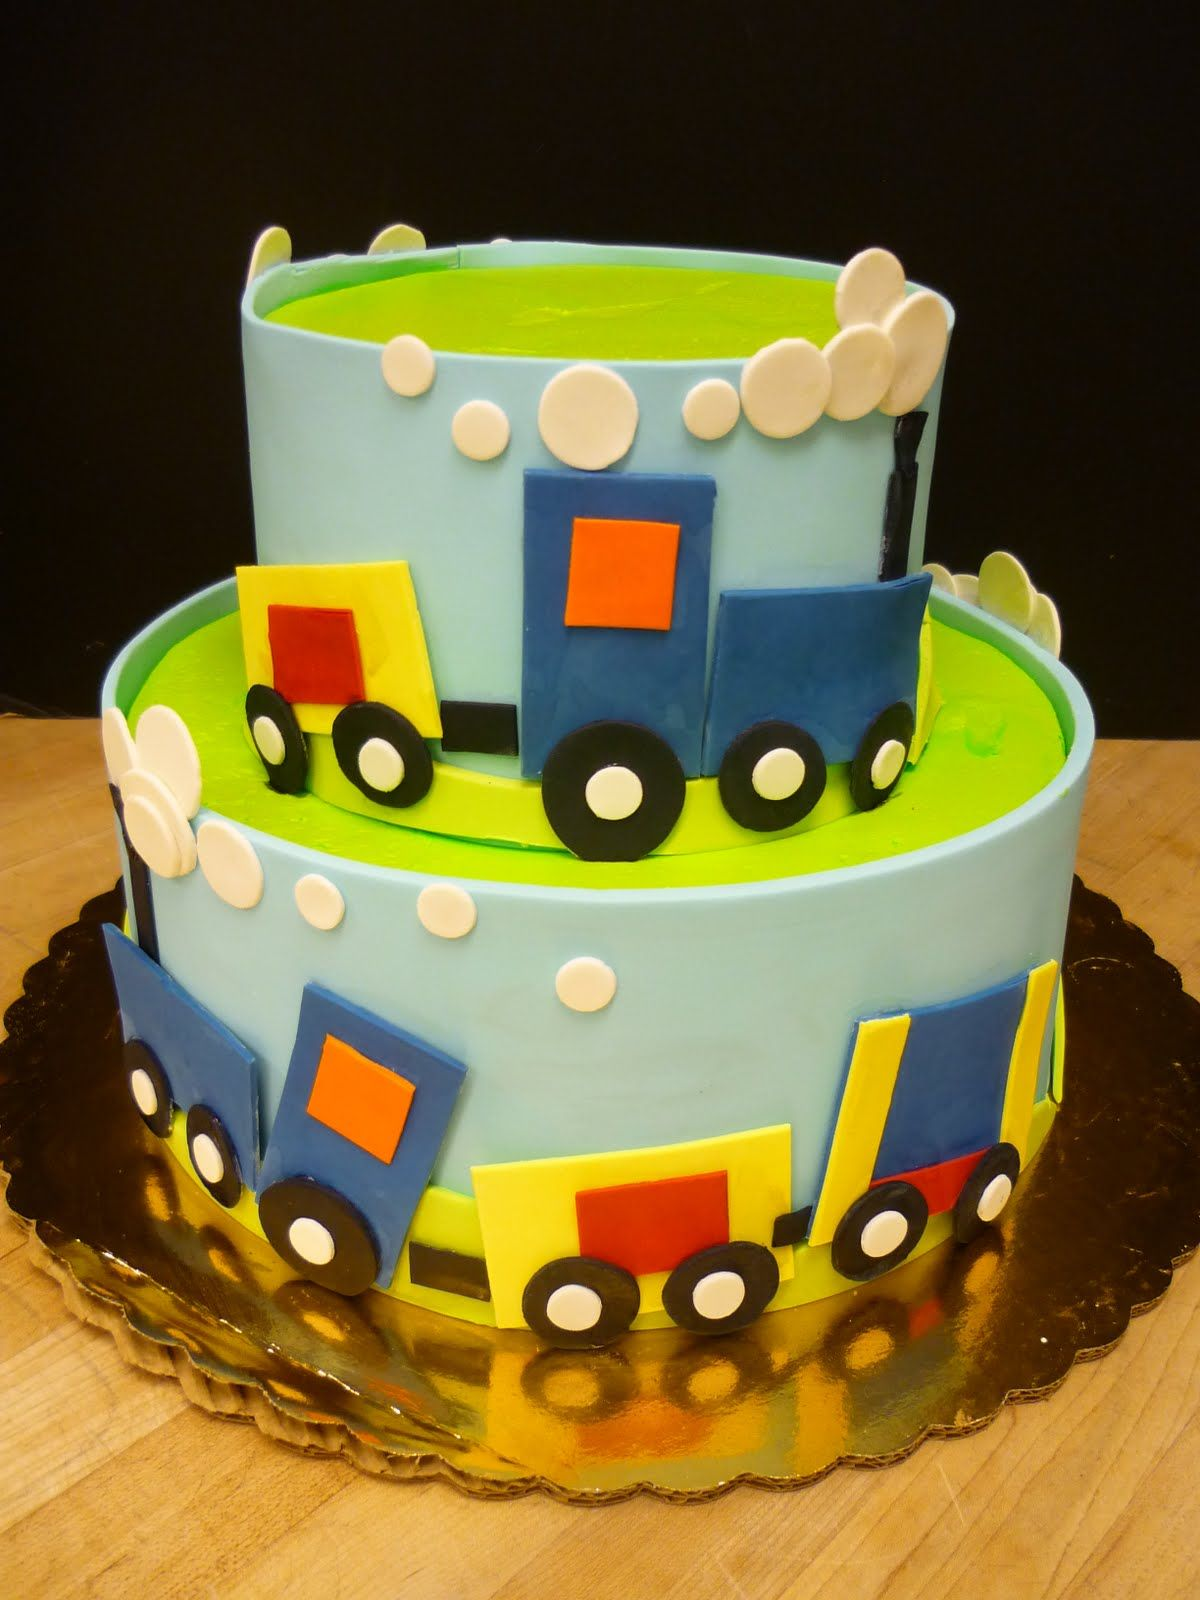 Pin by Benni Rienzo Radic on Childrens Cakes Pinterest Cake